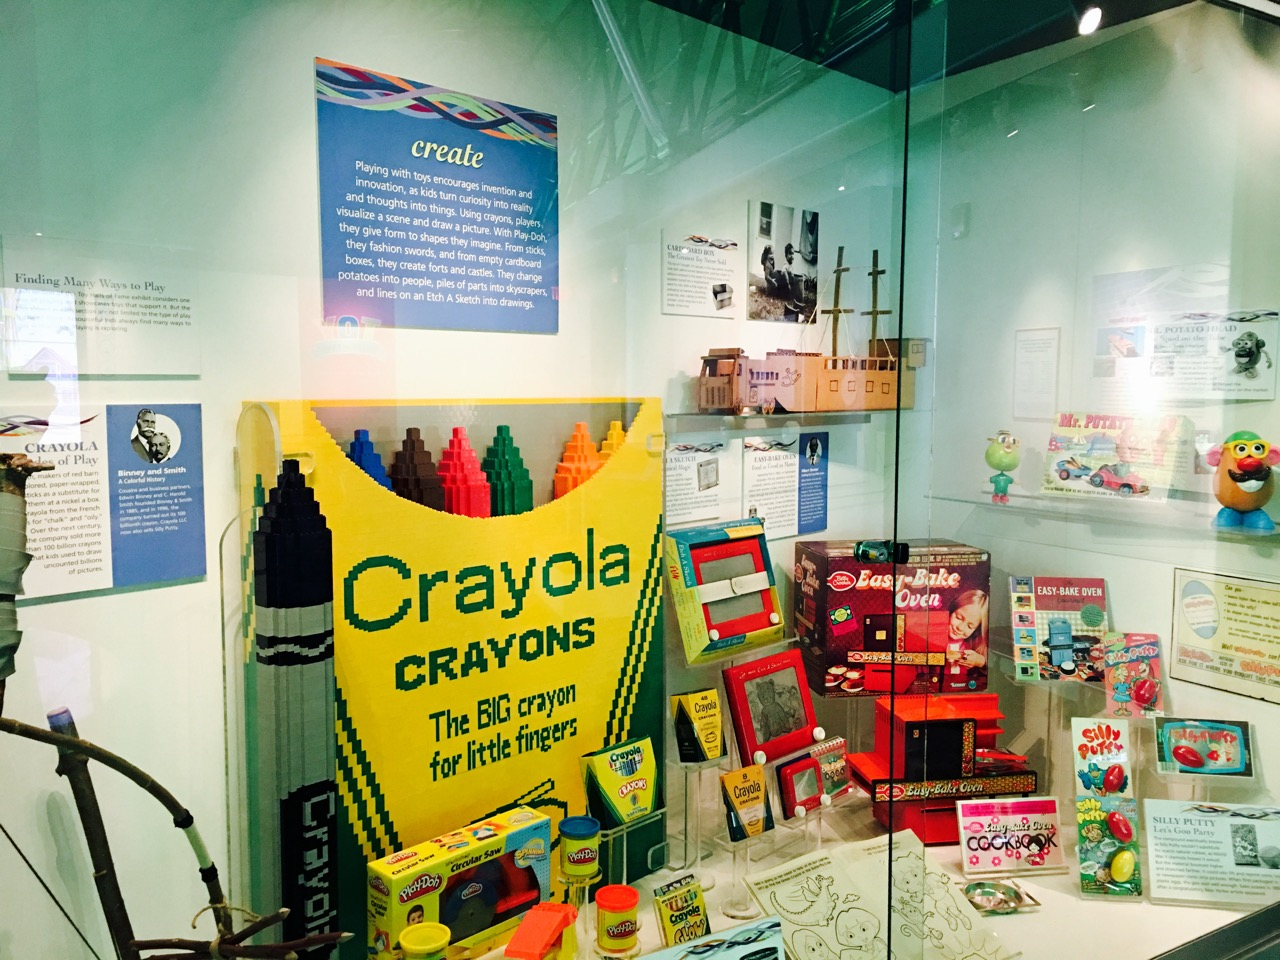 The Museum Combines Hands On Kid Friendly Activities And Exhibits Of A Childrens With Cultural Historic Content History